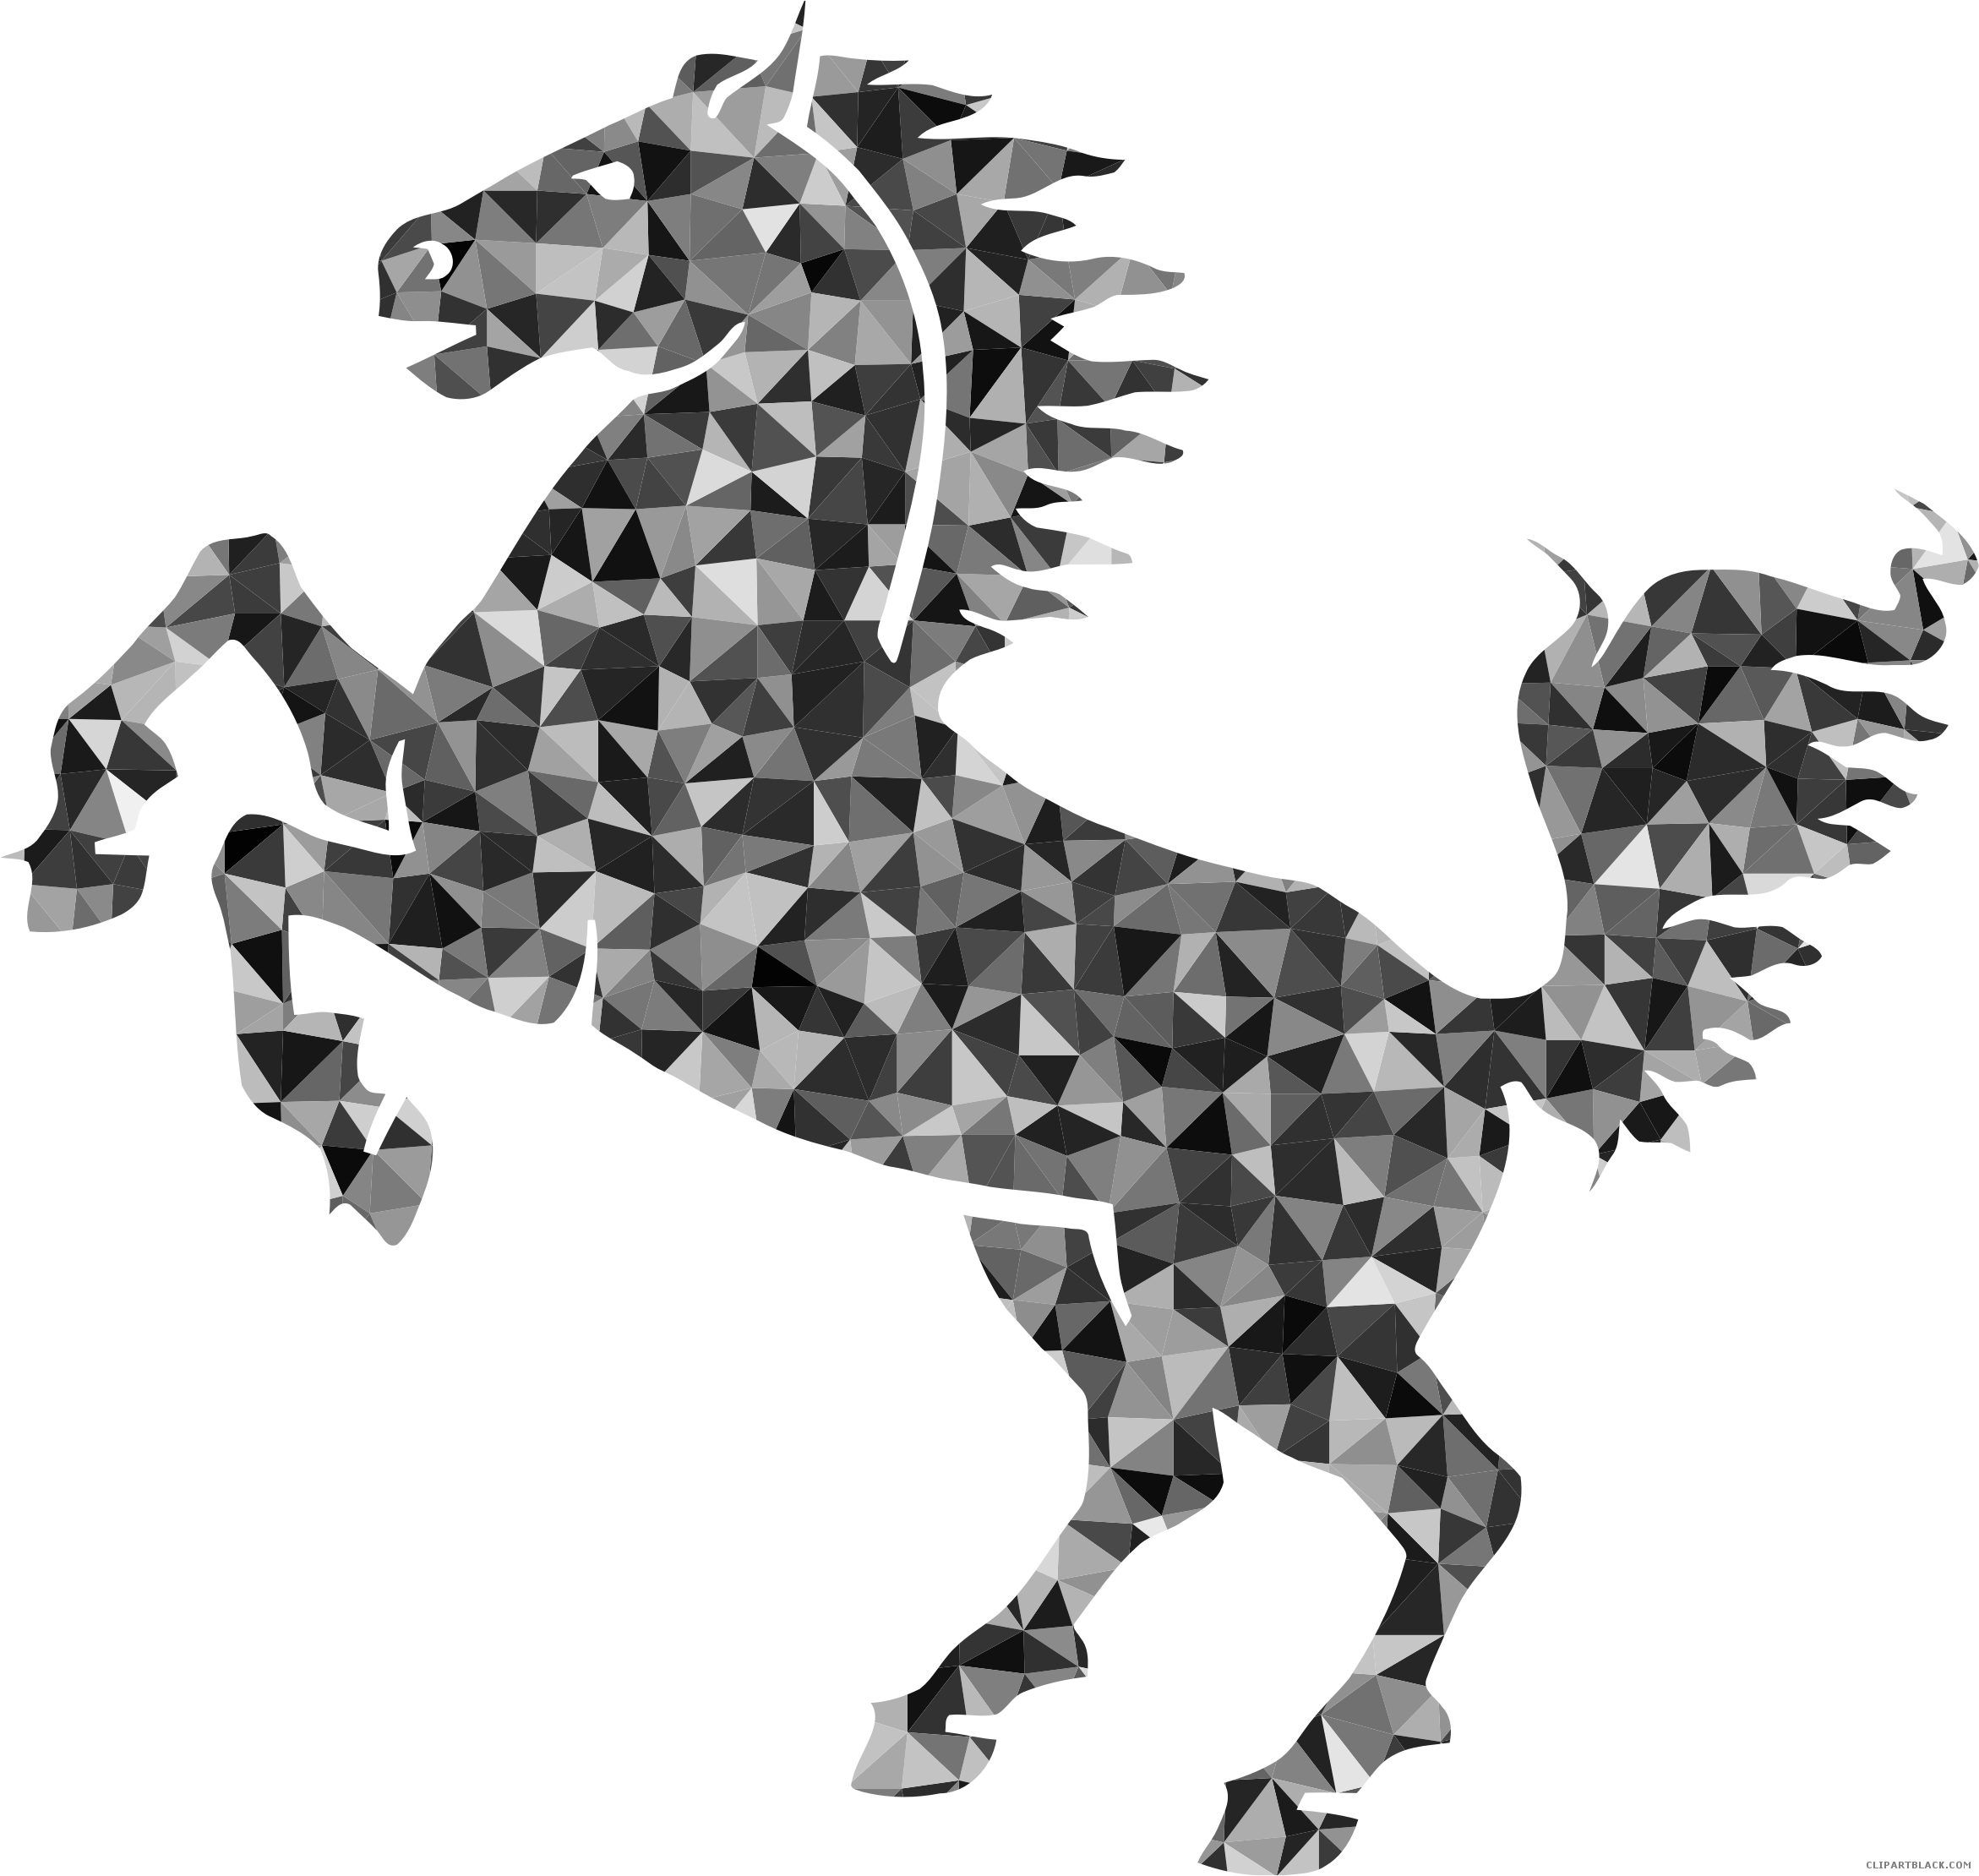 Horse clipart transportation. Prismatic clipartblack com animal